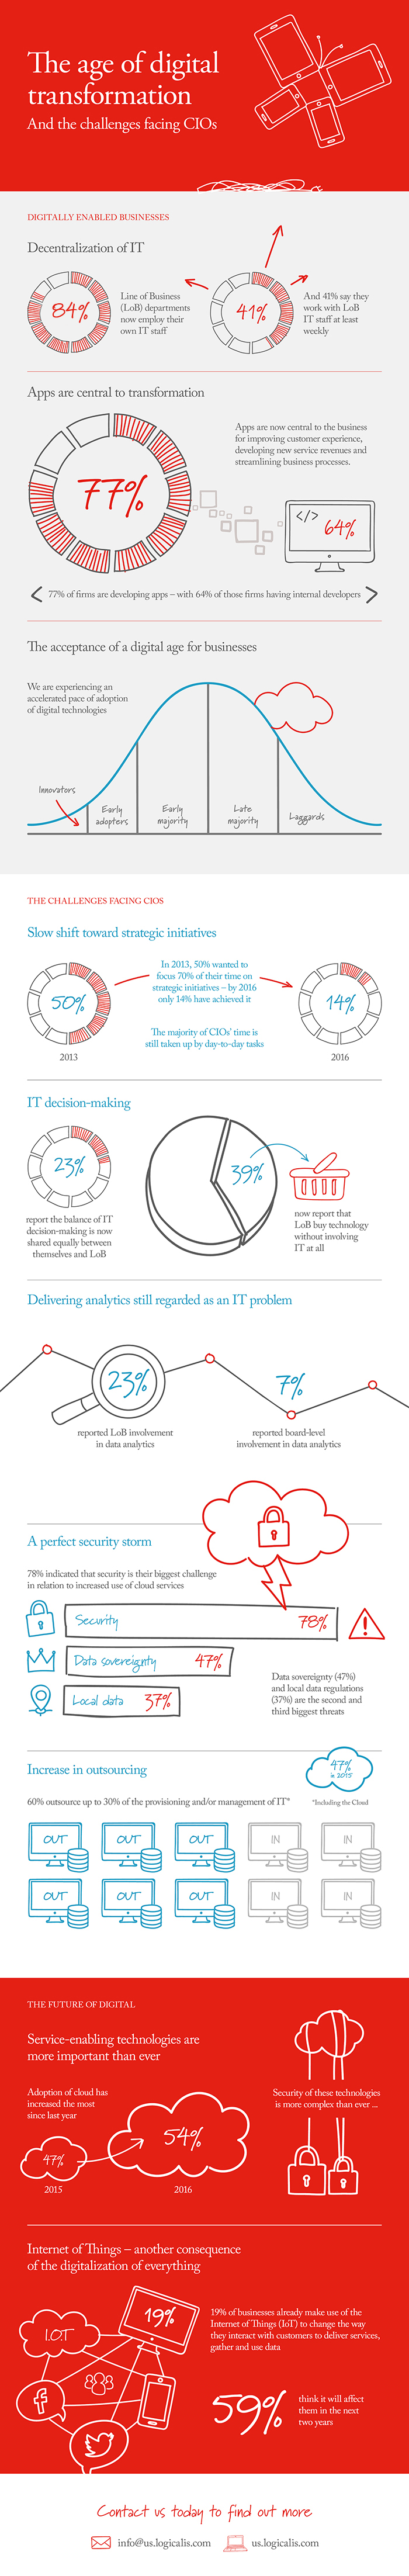 Key findings from the fourth annual Logicalis Global CIO Survey.